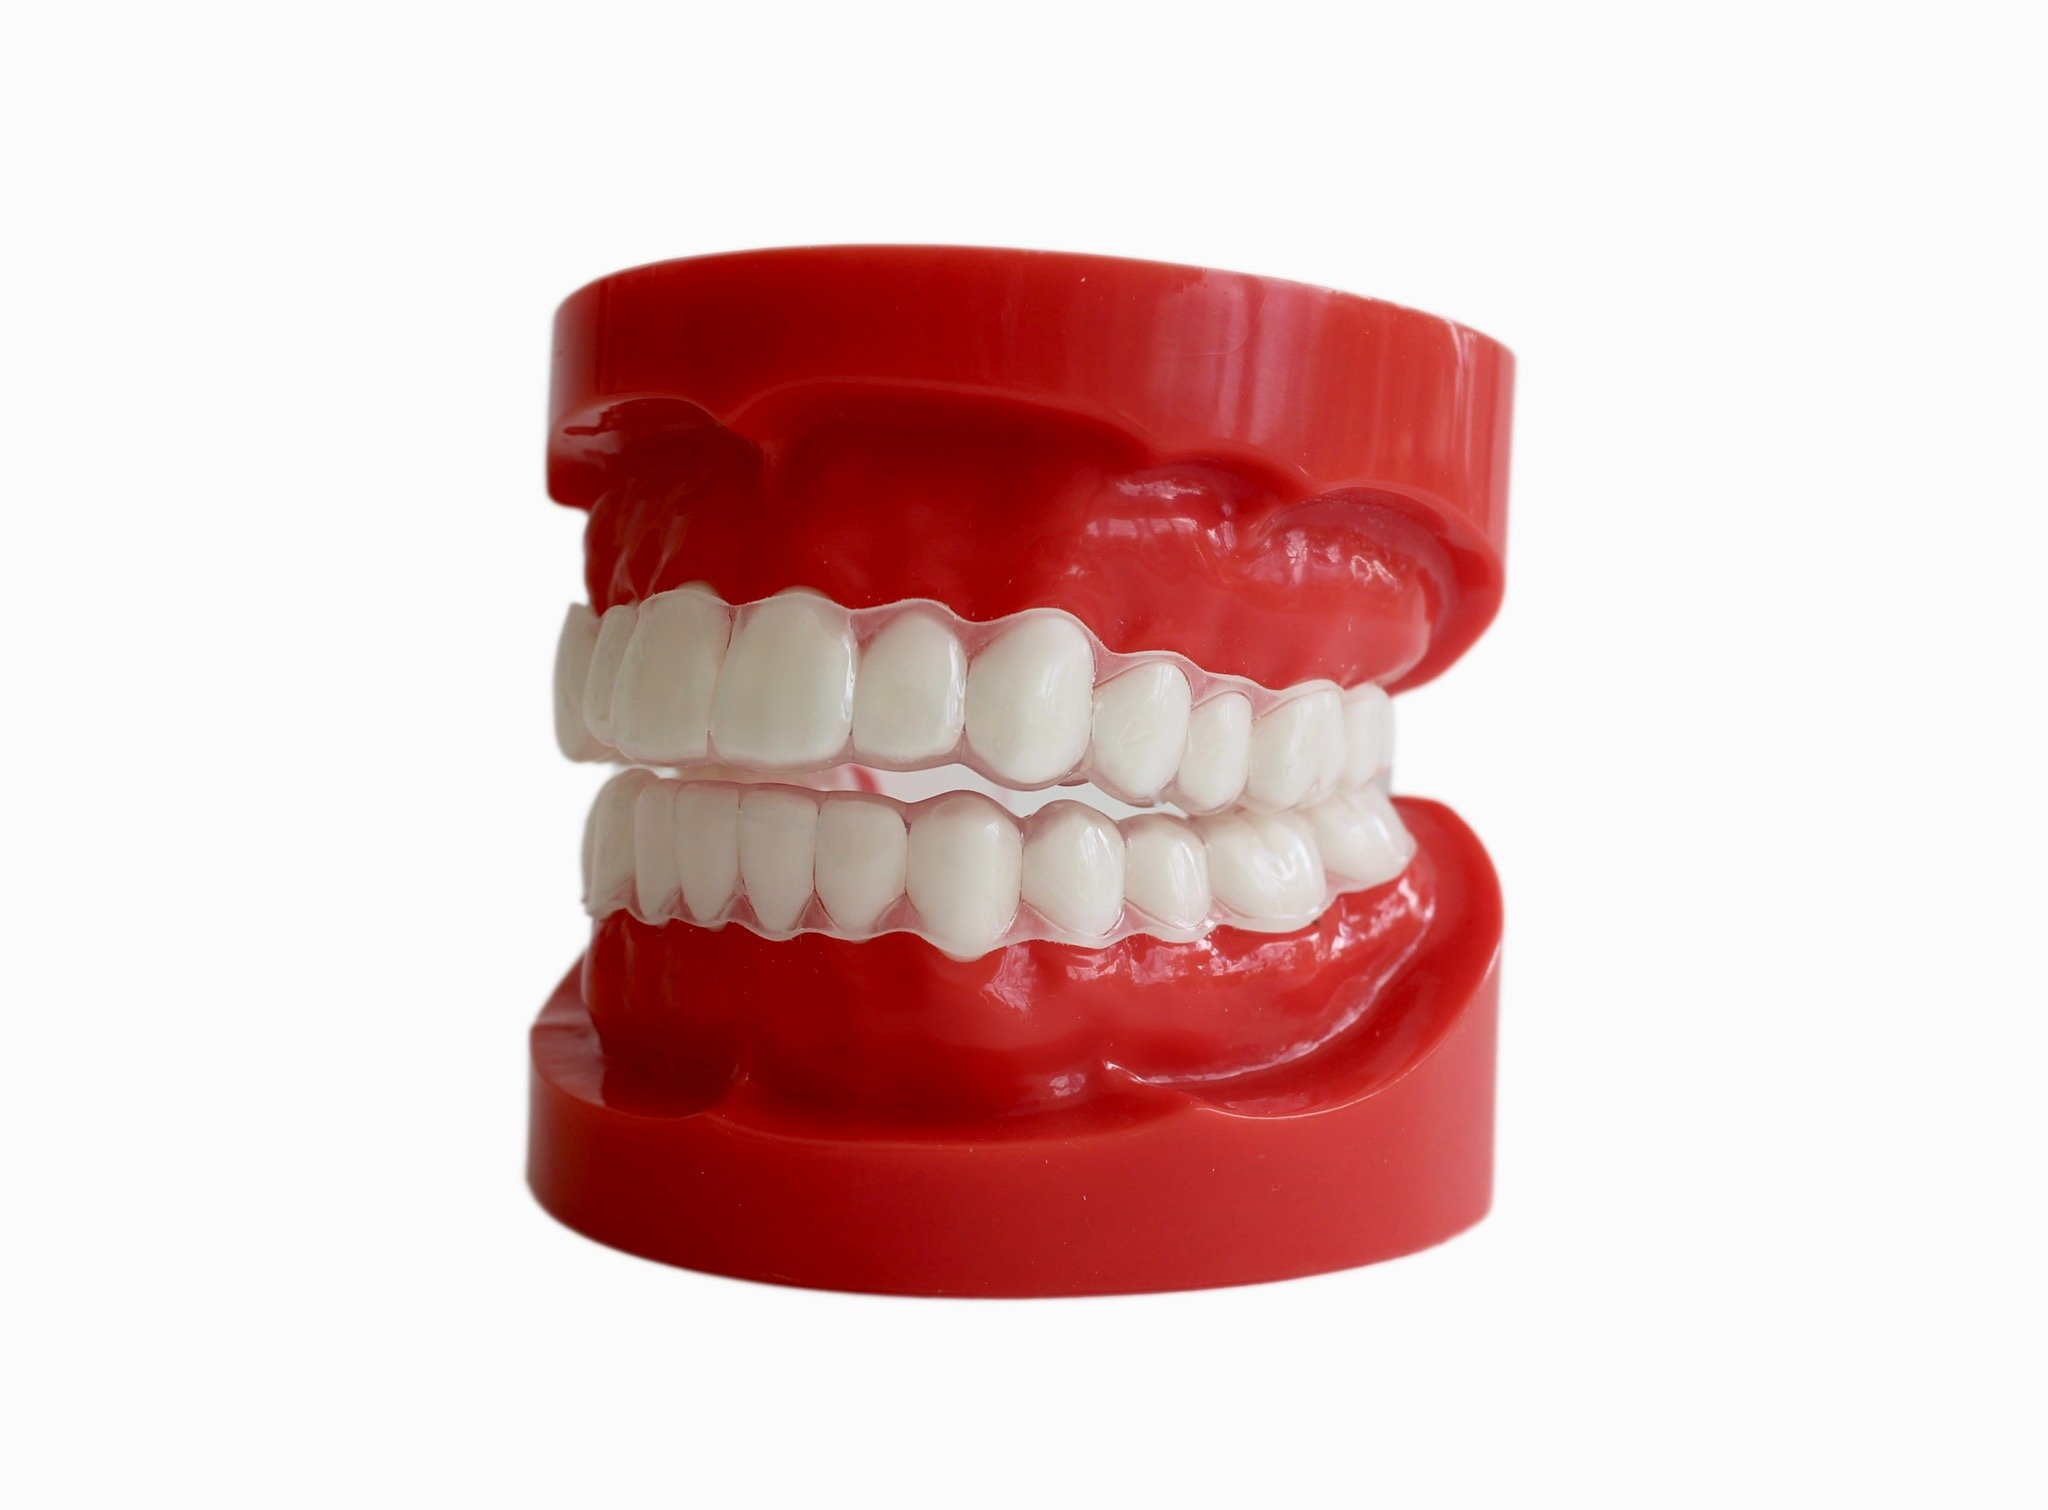 Upper & Lower Soft Dental Night Guards For Nighttime Tongue Biting. Soft Custom Fit Mouthguard To Protect Tongue Damage From Nocturnal Tongue Biting (Adult Male)